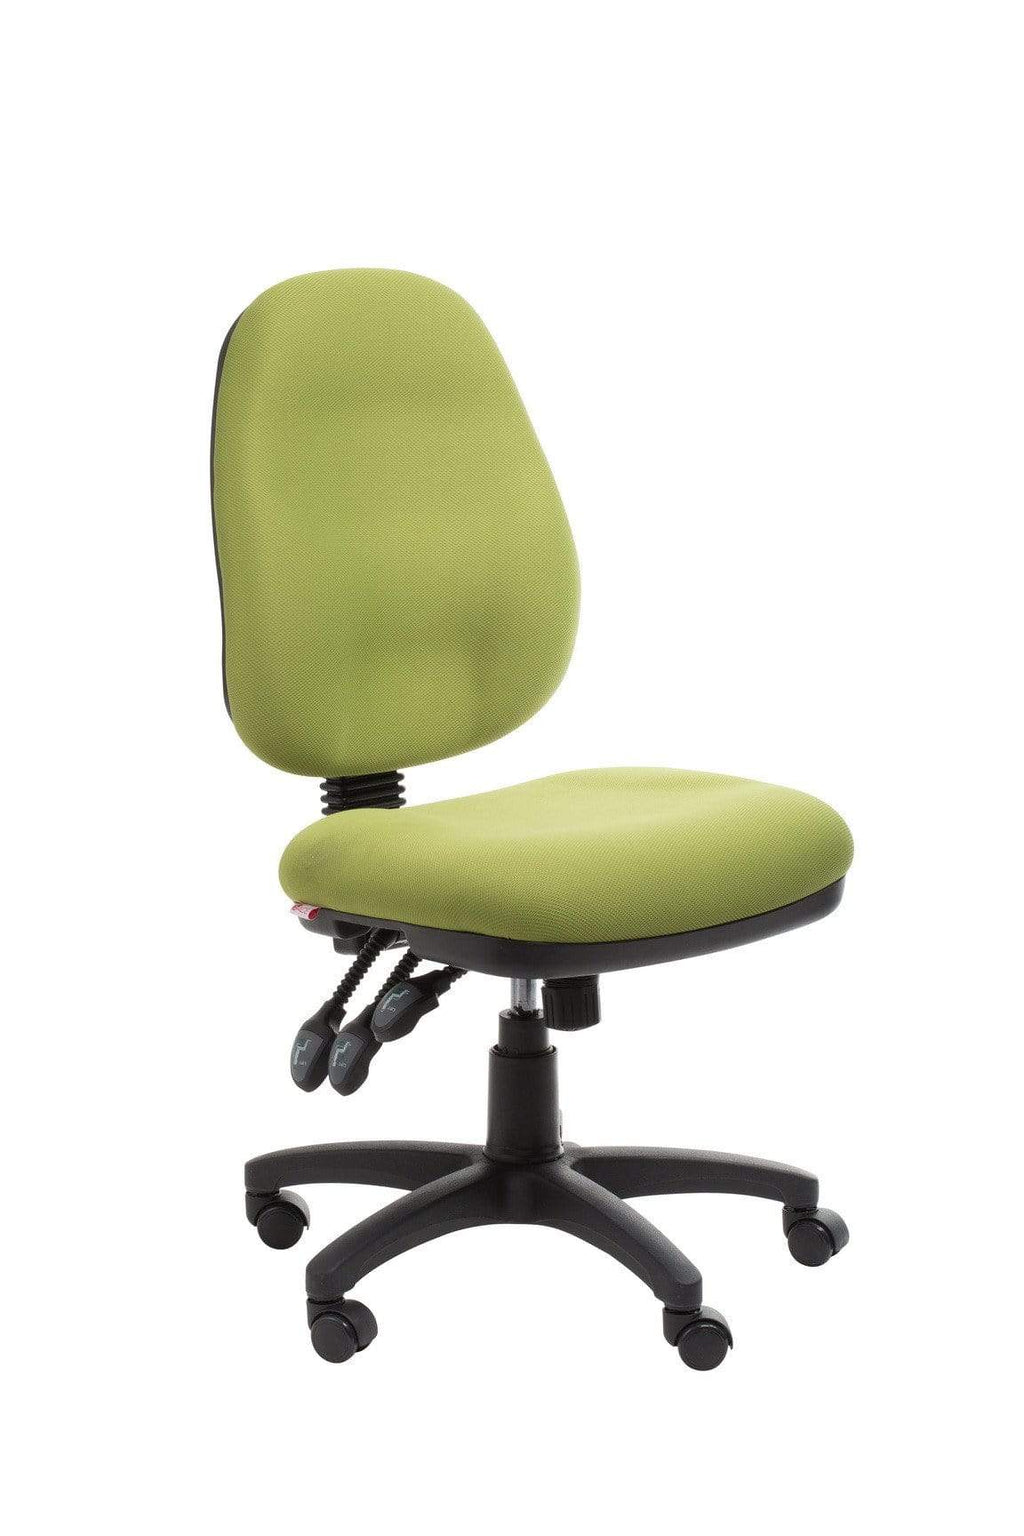 Adelaide Ergonomic Chair